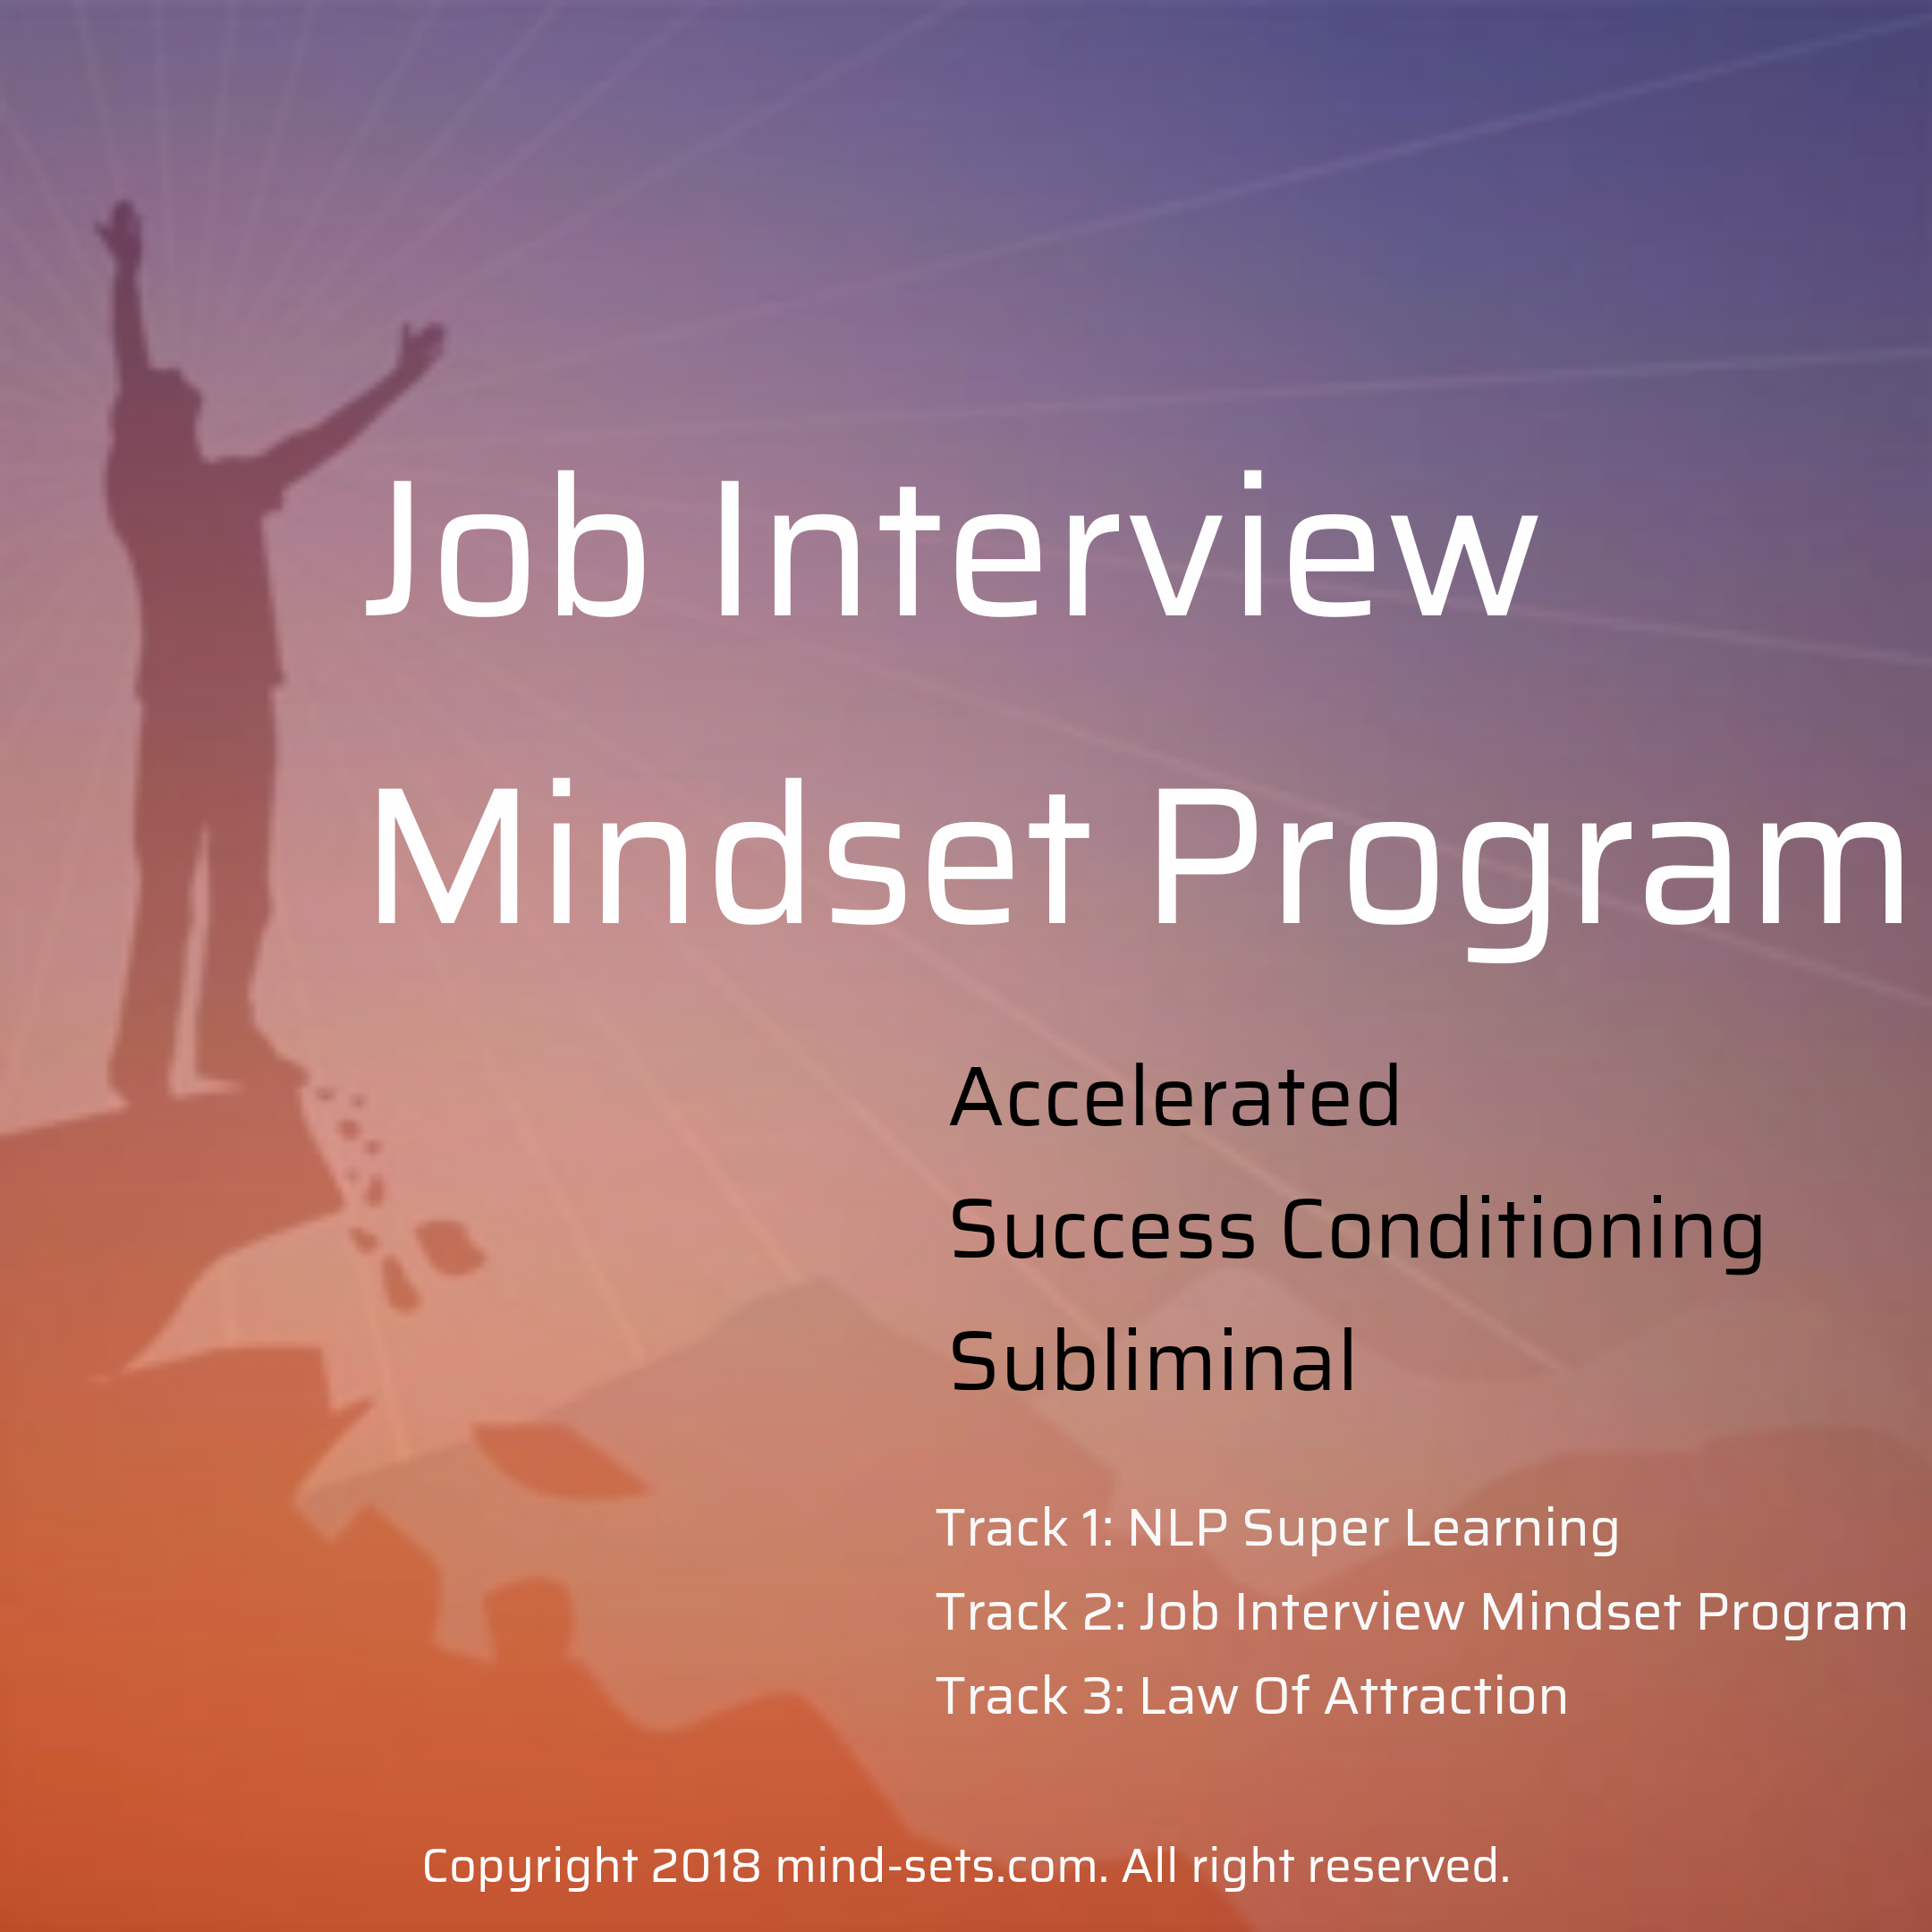 Job Interview Mindset Program